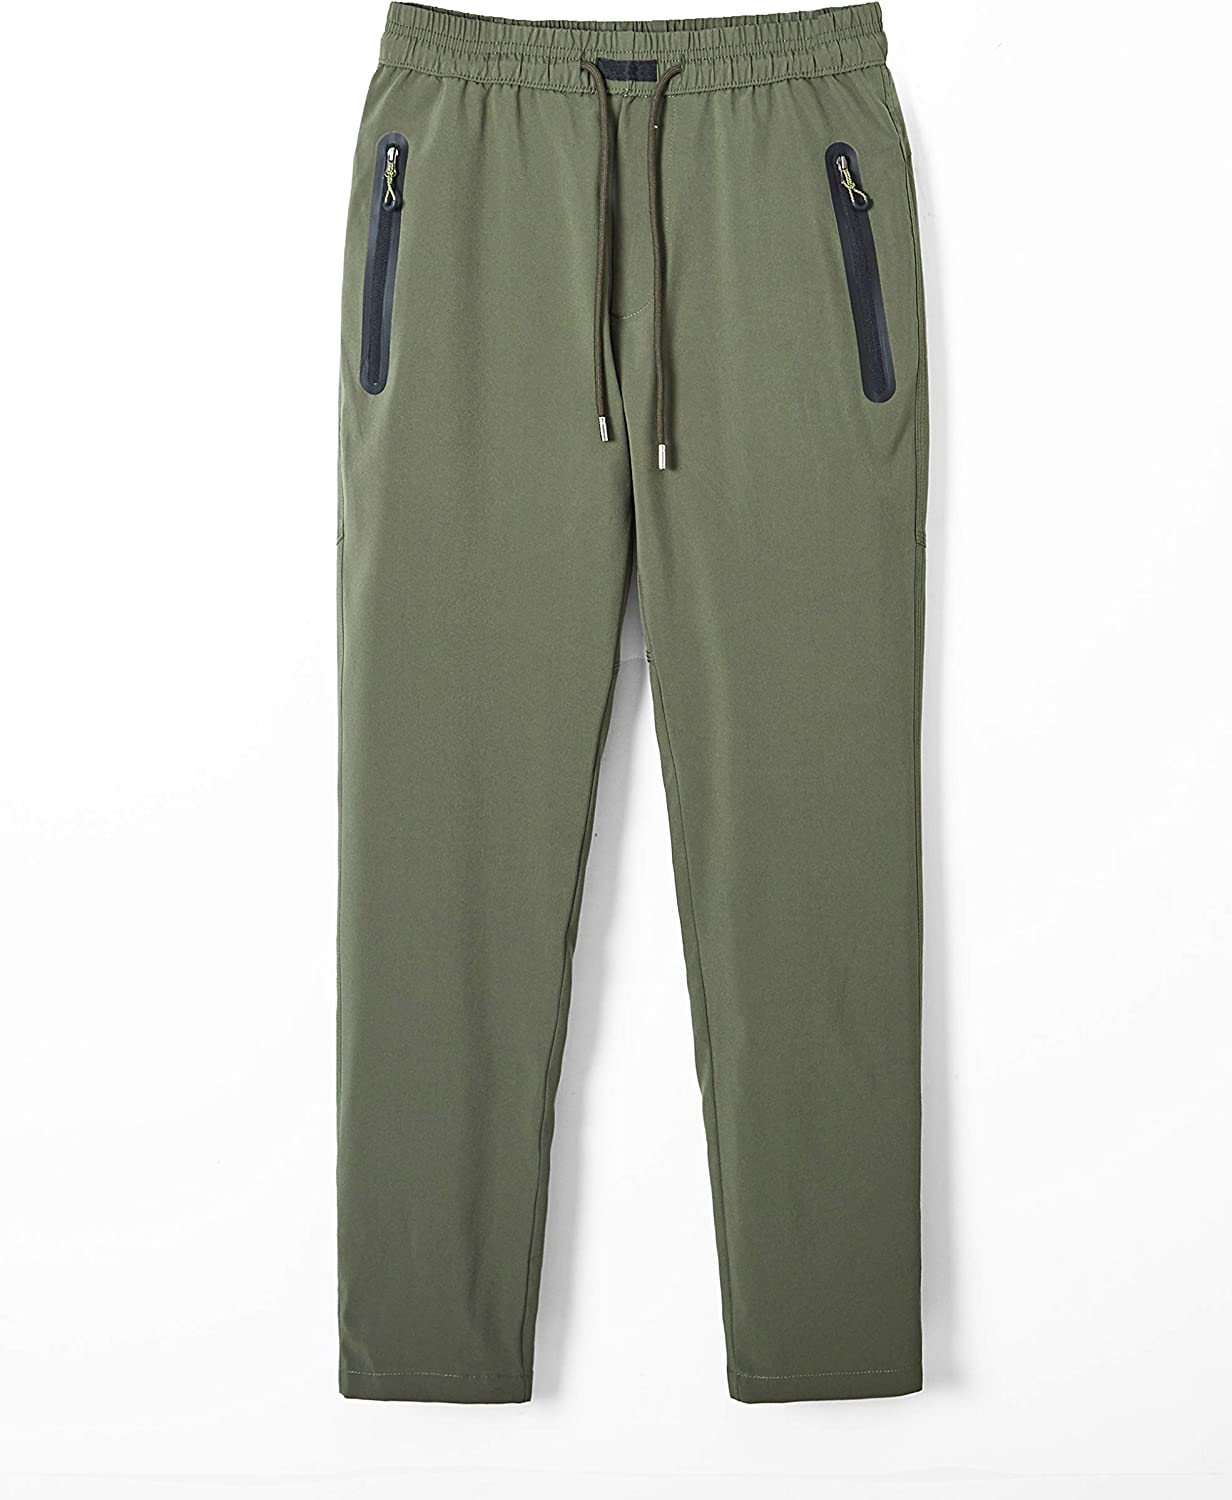 MAGCOMSEN Mens Quick Dry Running Jogger Pants with Zipper Pockets Open Bottom Sweatpants for Workout Hiking Gym